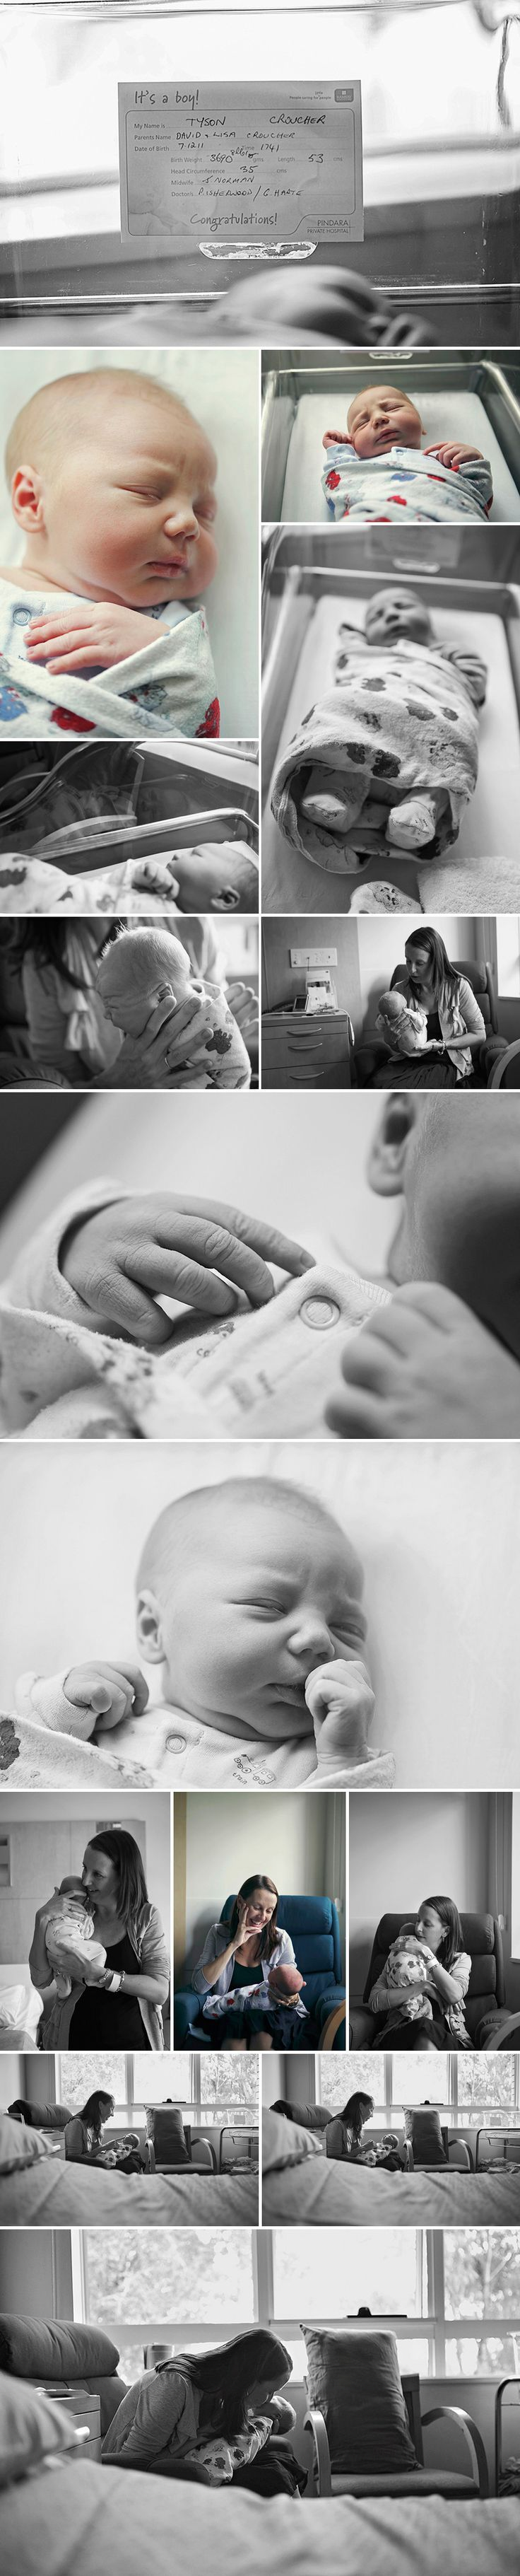 hospital newborn session - all my favorite shots to get for hospital newborn sessions :)